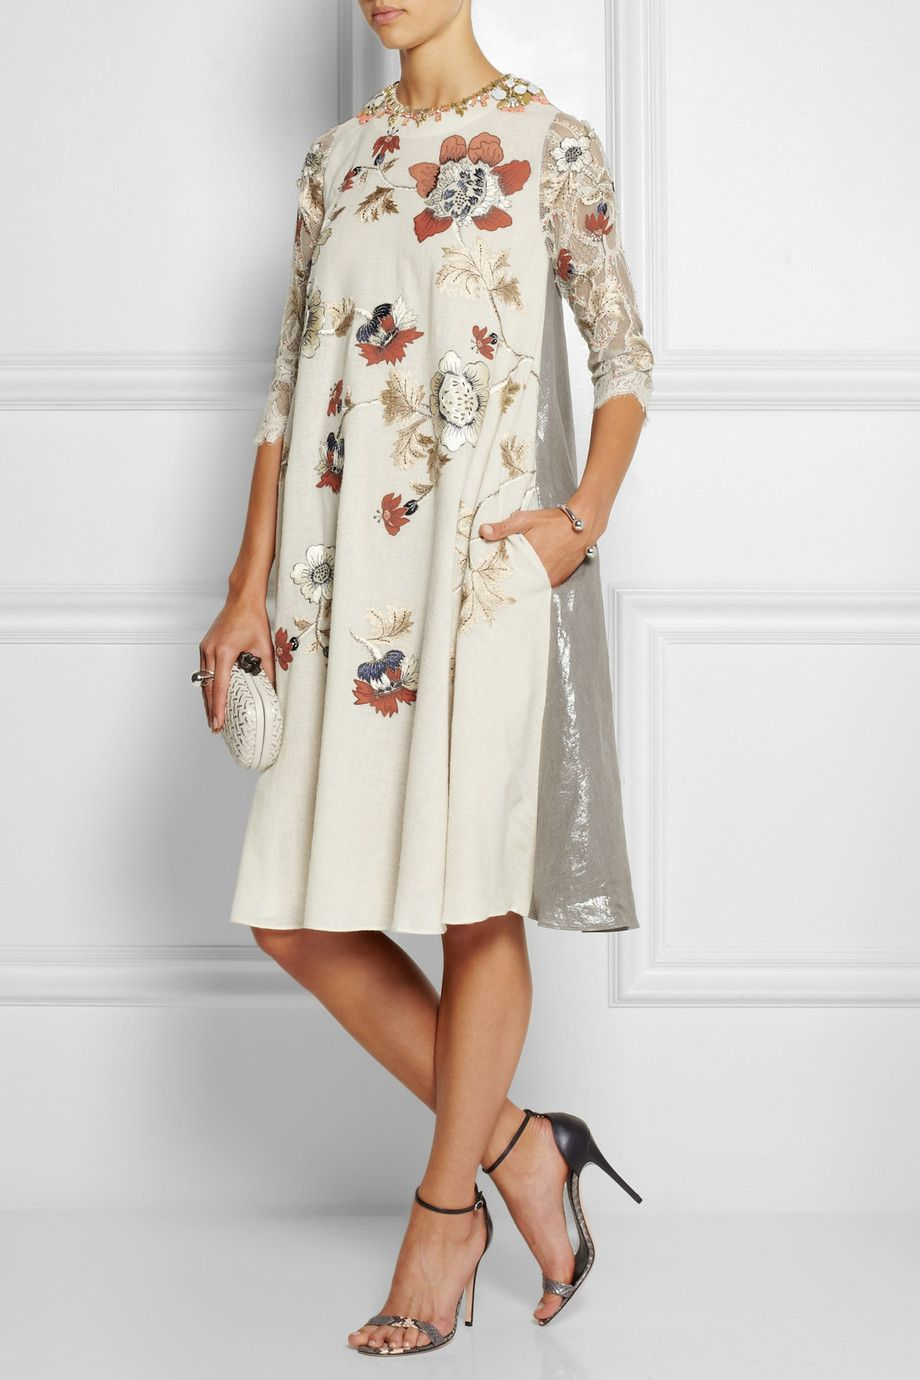 Le Meilleur Biyan Liana Embellished Embroidered Voile Lace And Lamé Ce Mois Ci